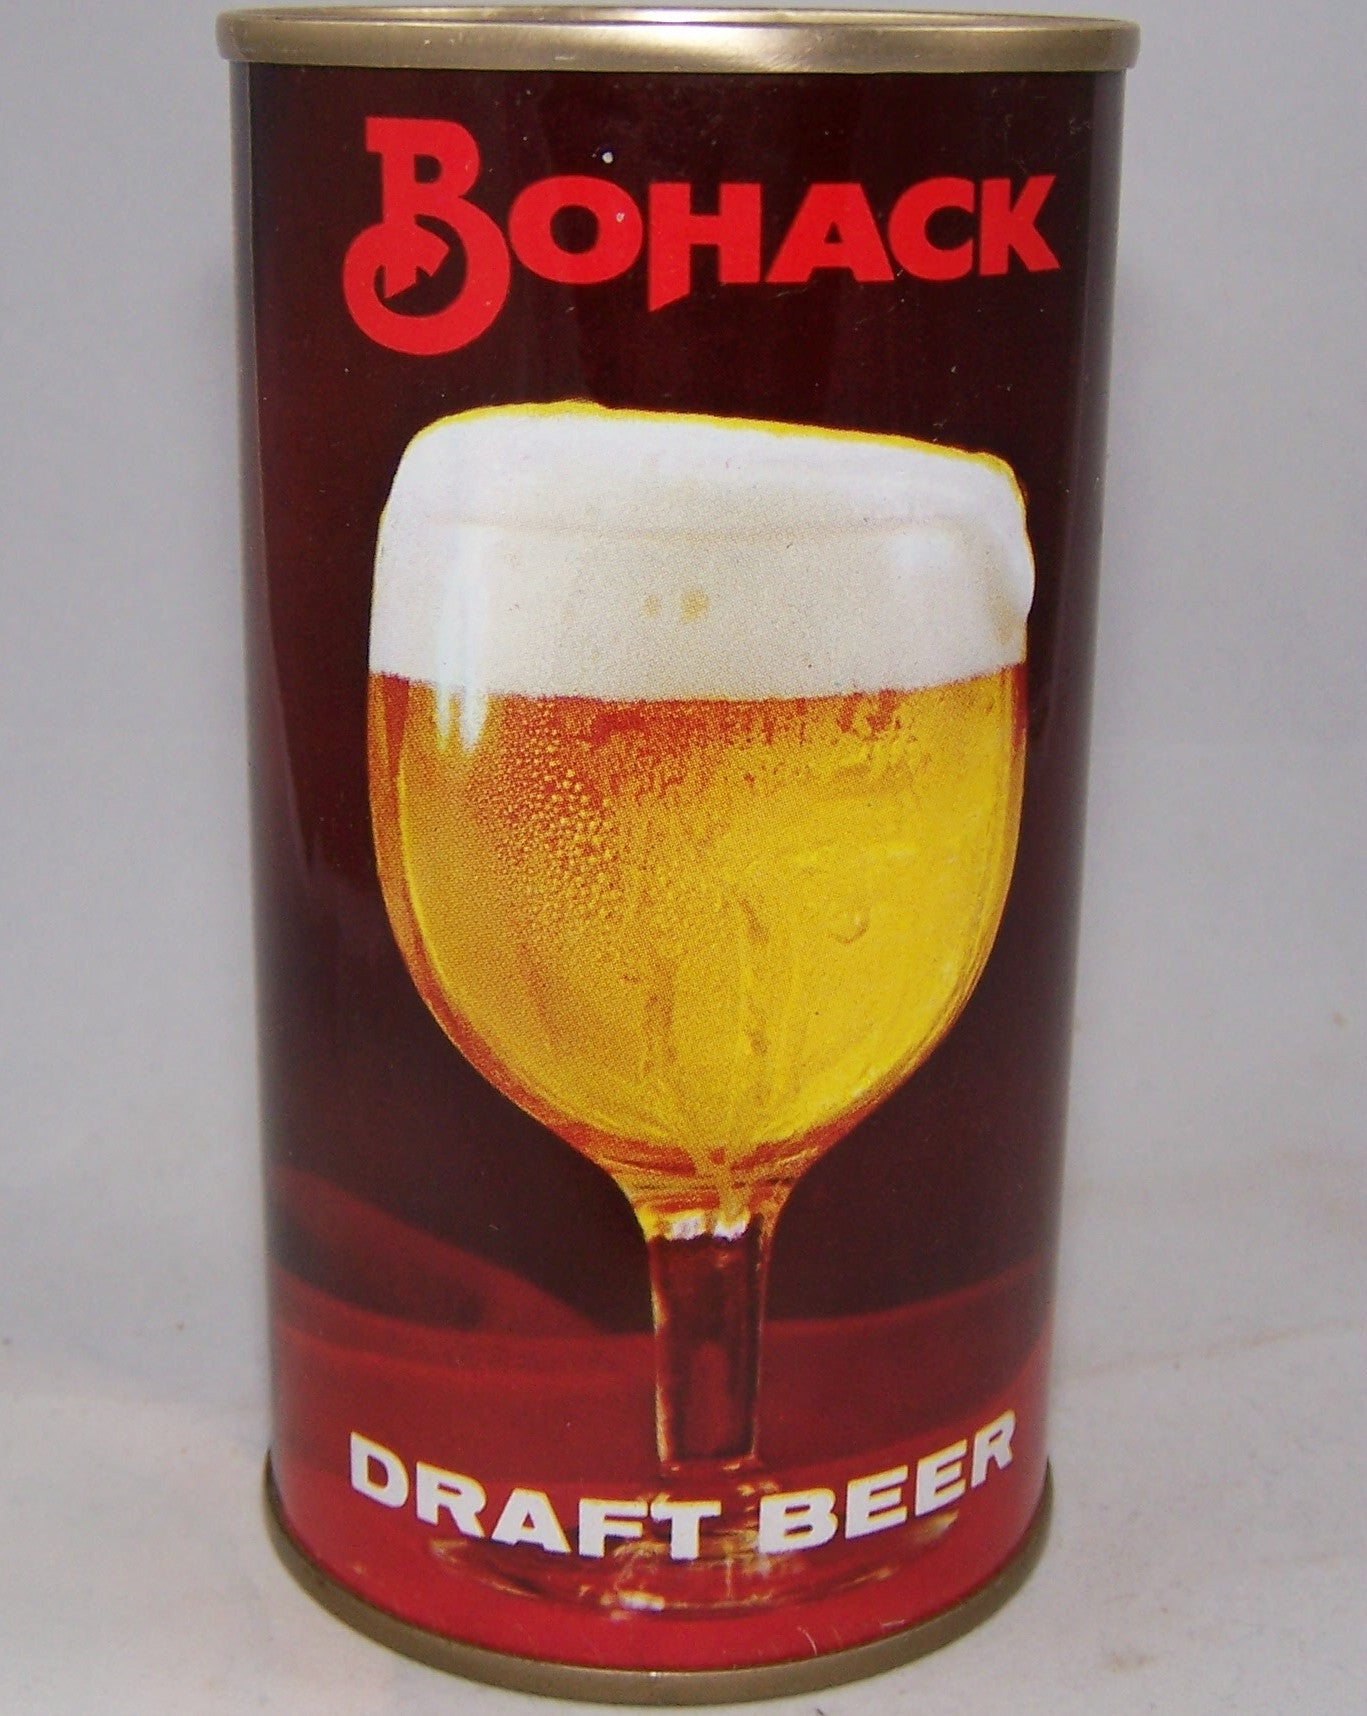 Bohack Draft Beer, USBC II 44-14, Grade A1+ Sold on 07/31/16